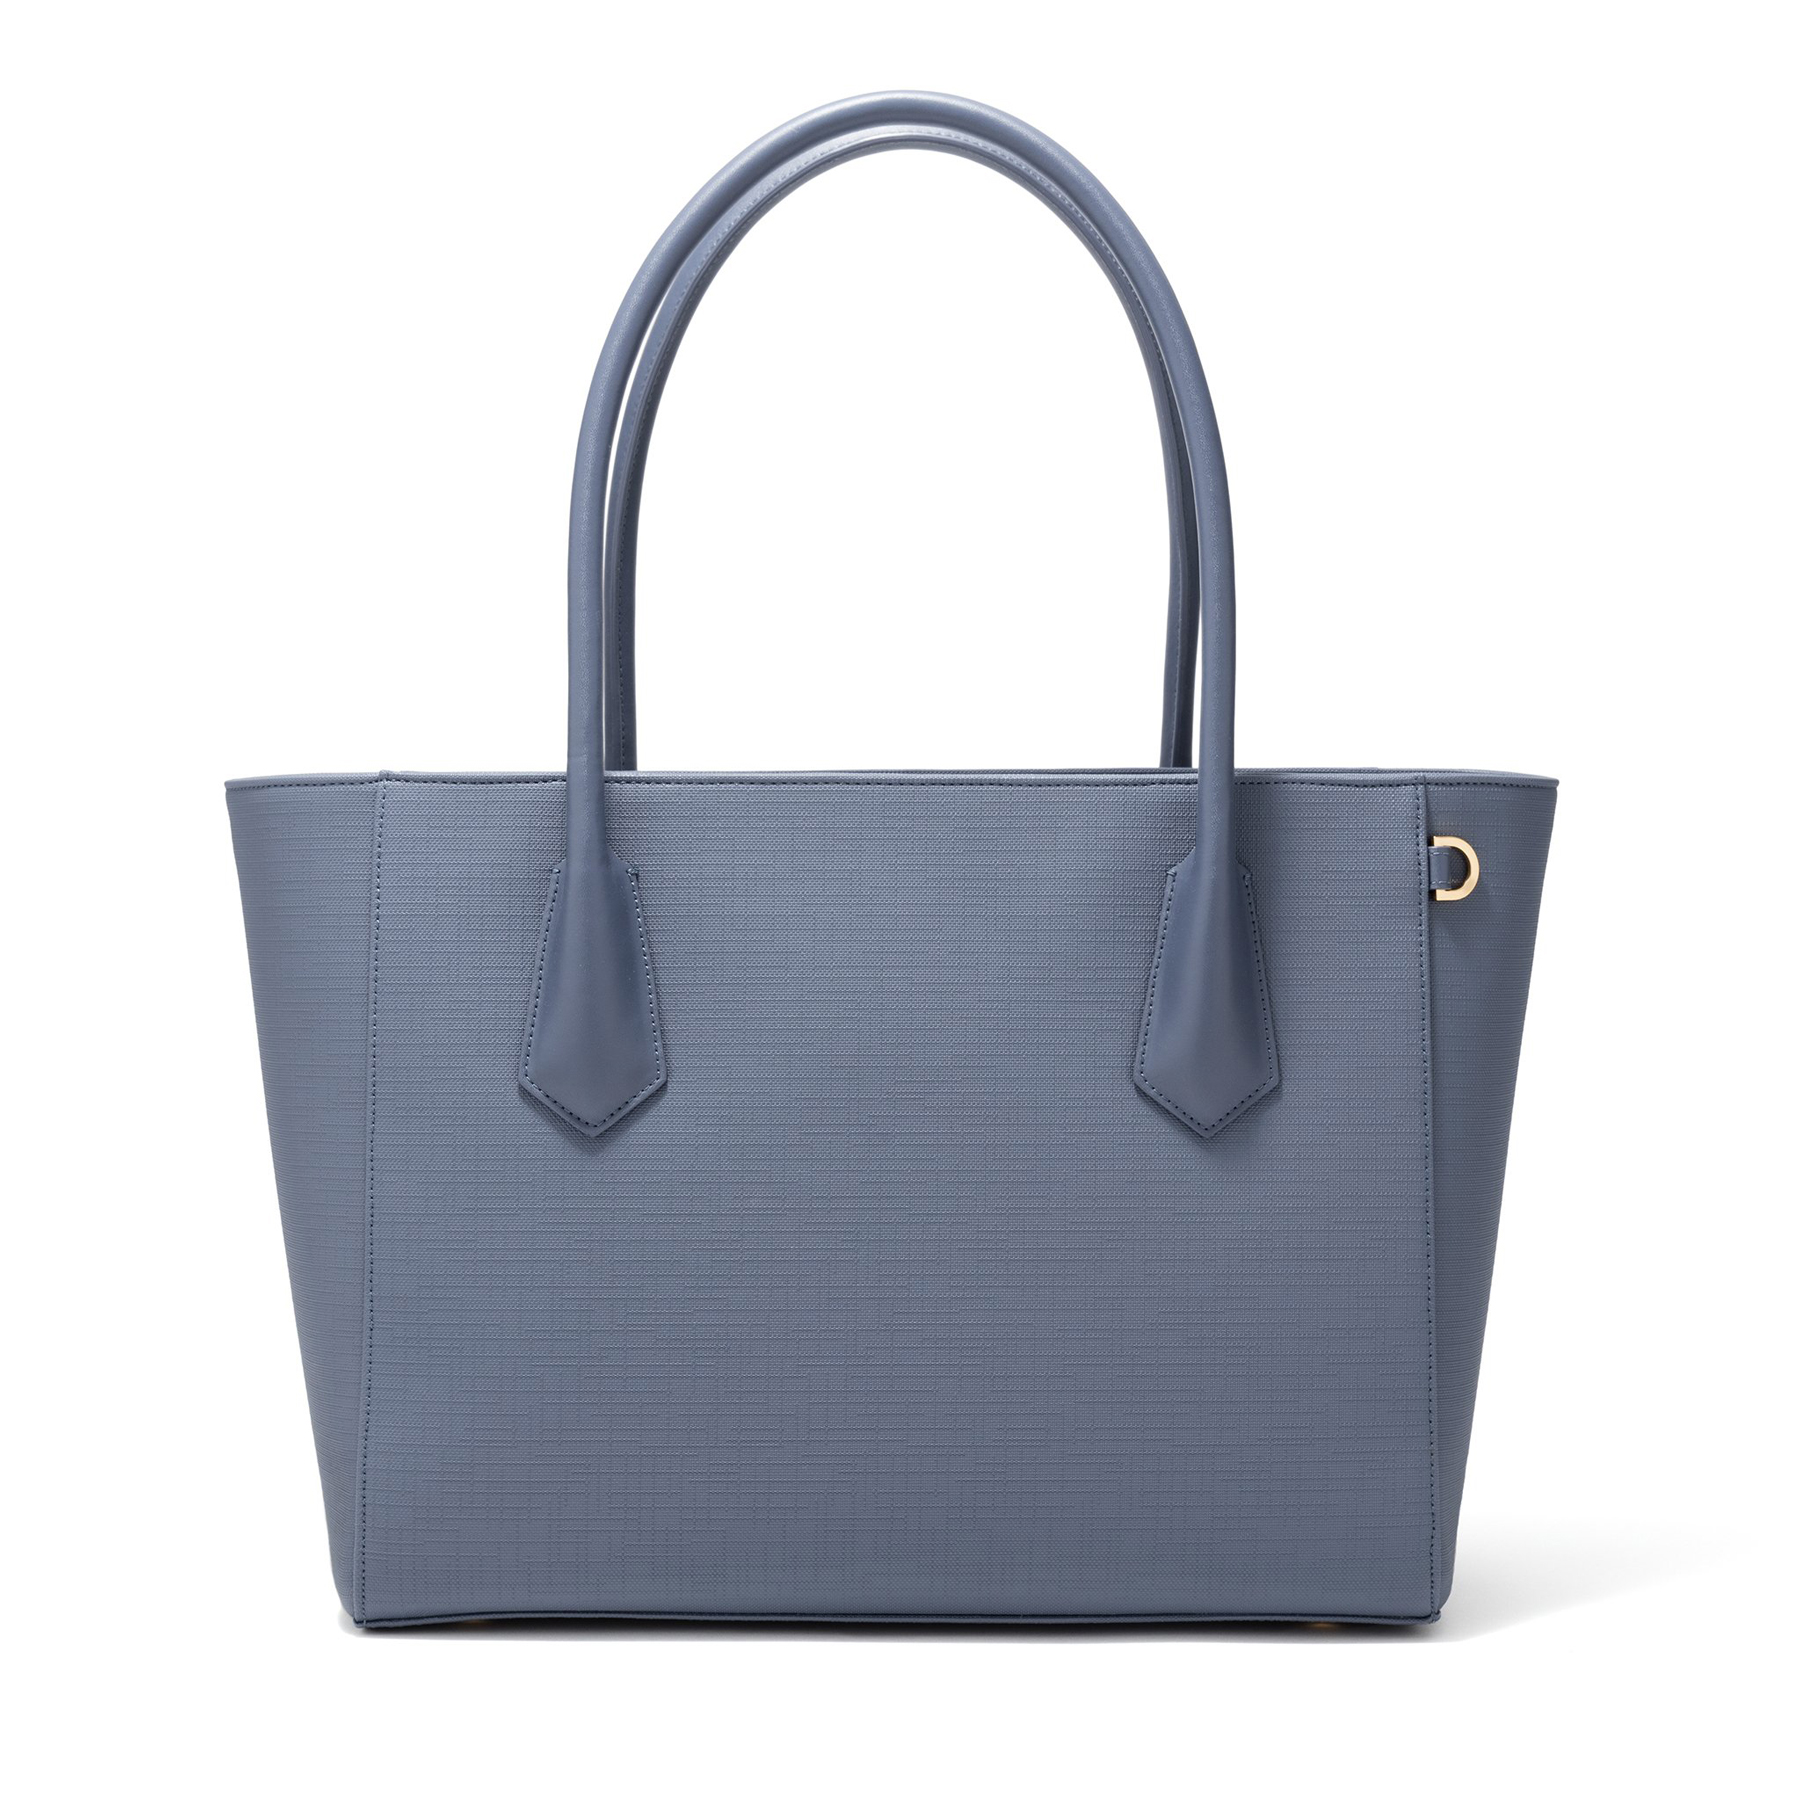 Best gifts for grandma - Dagne Dover Signature Tote